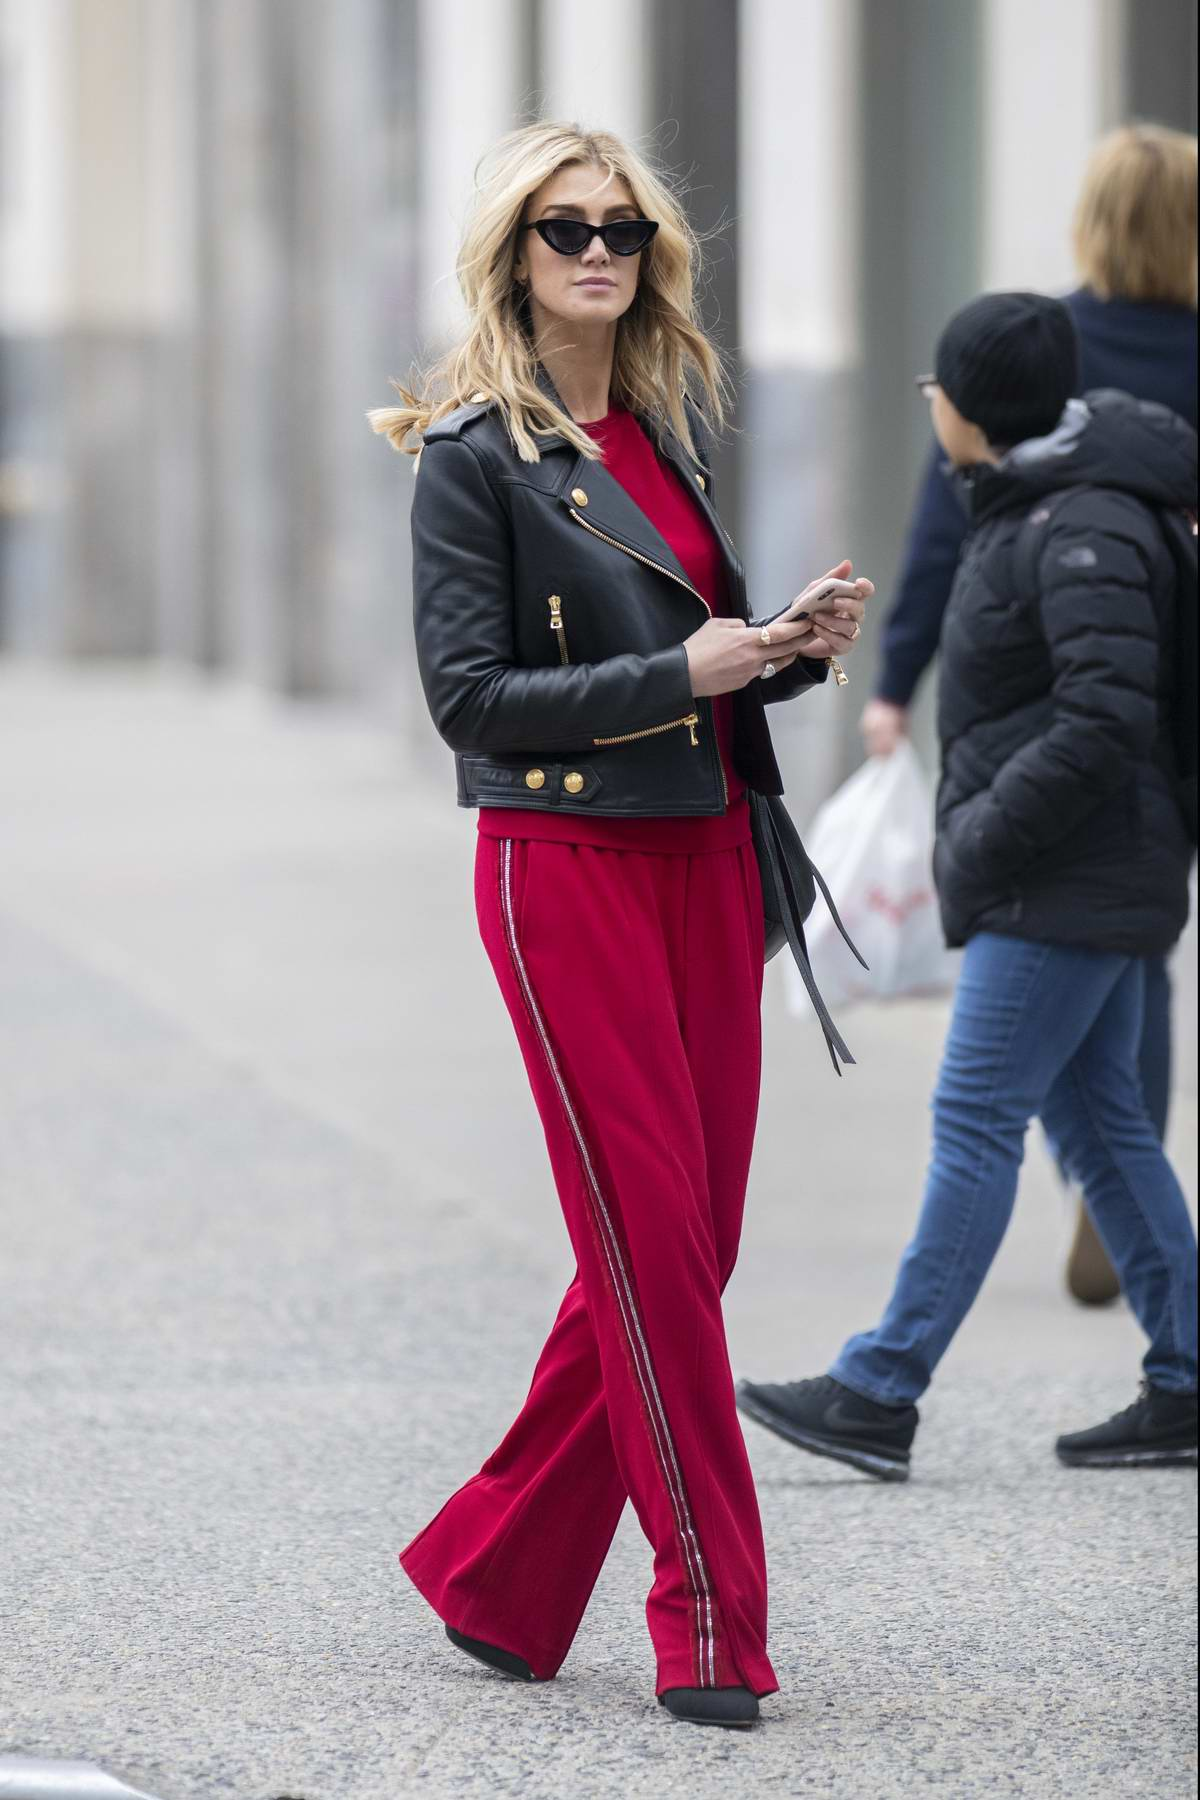 Delta Goodrem steps out in an eye-catching red outfit on her way to lunch in New York City